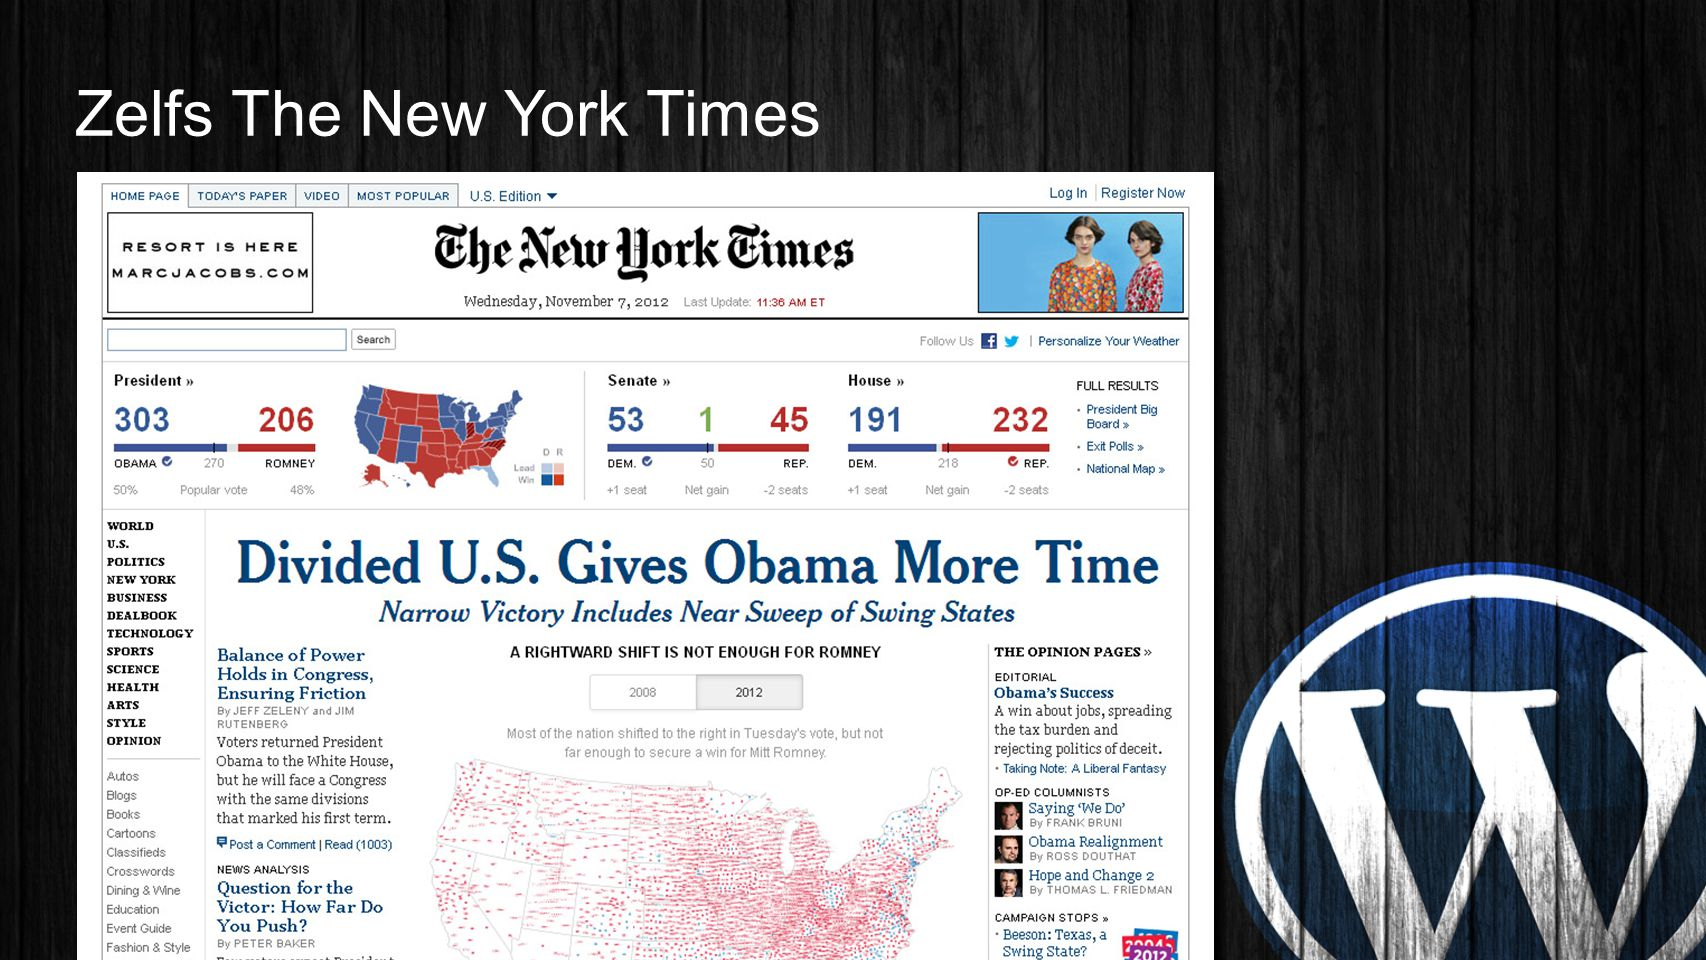 Zelfs The New York Times